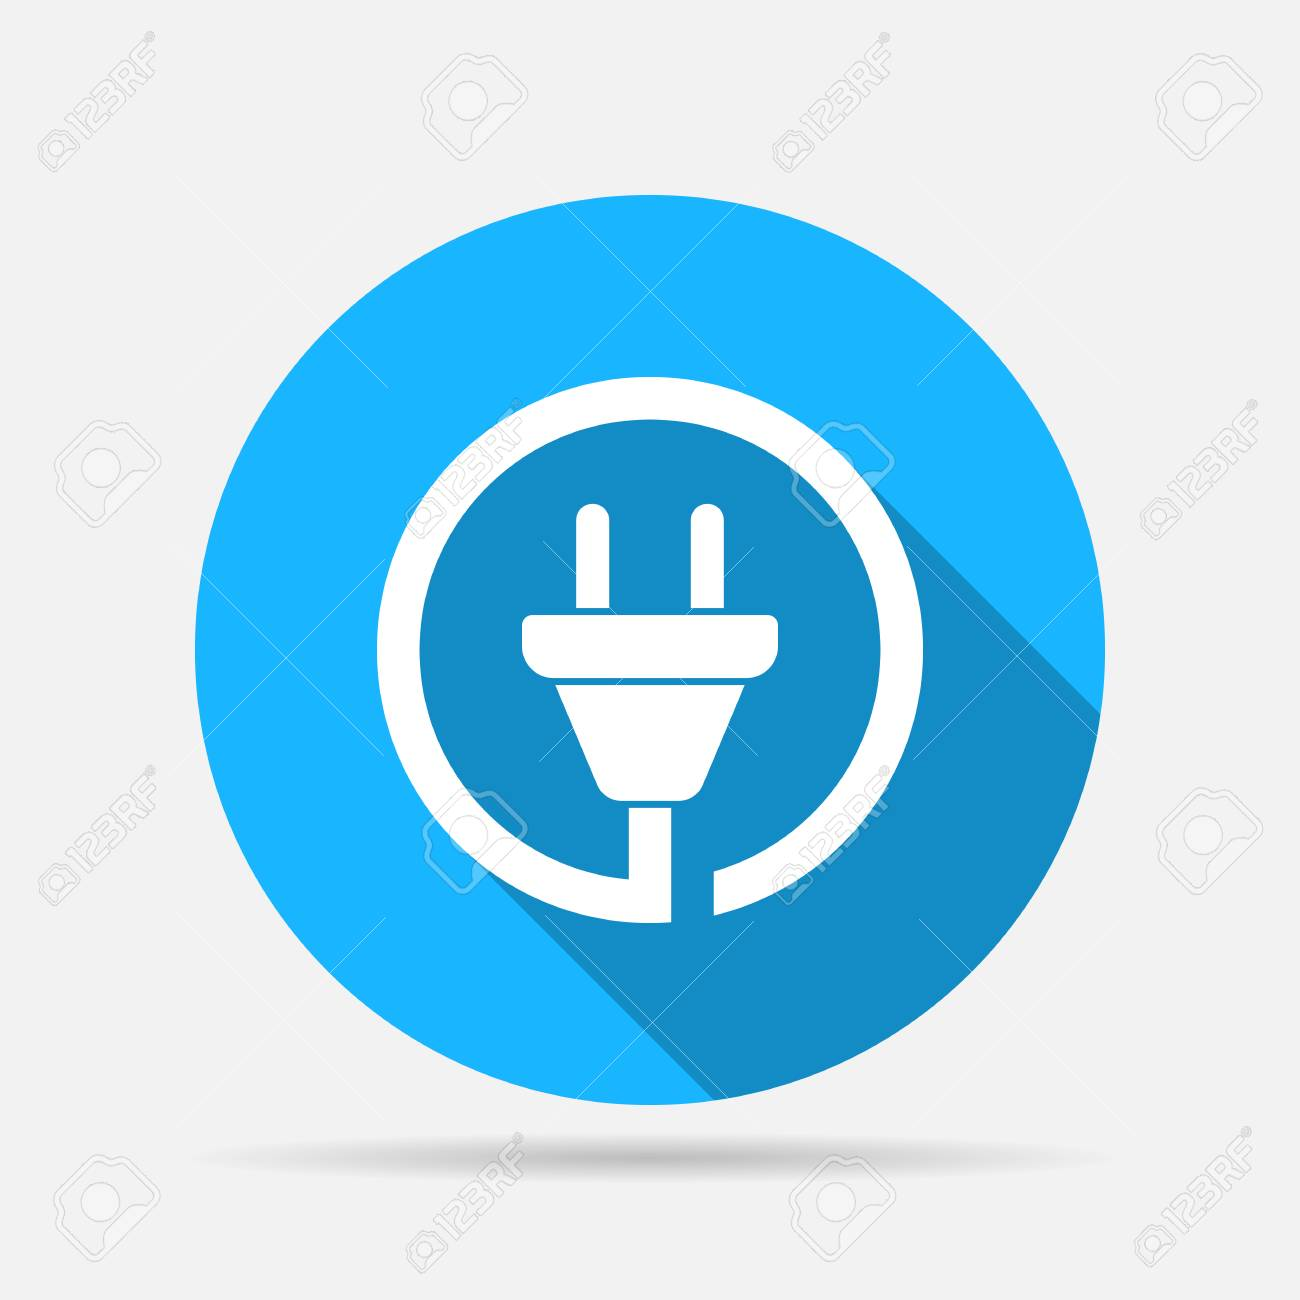 Wire Plug Icon Royalty Free Cliparts, Vectors, And Stock ...